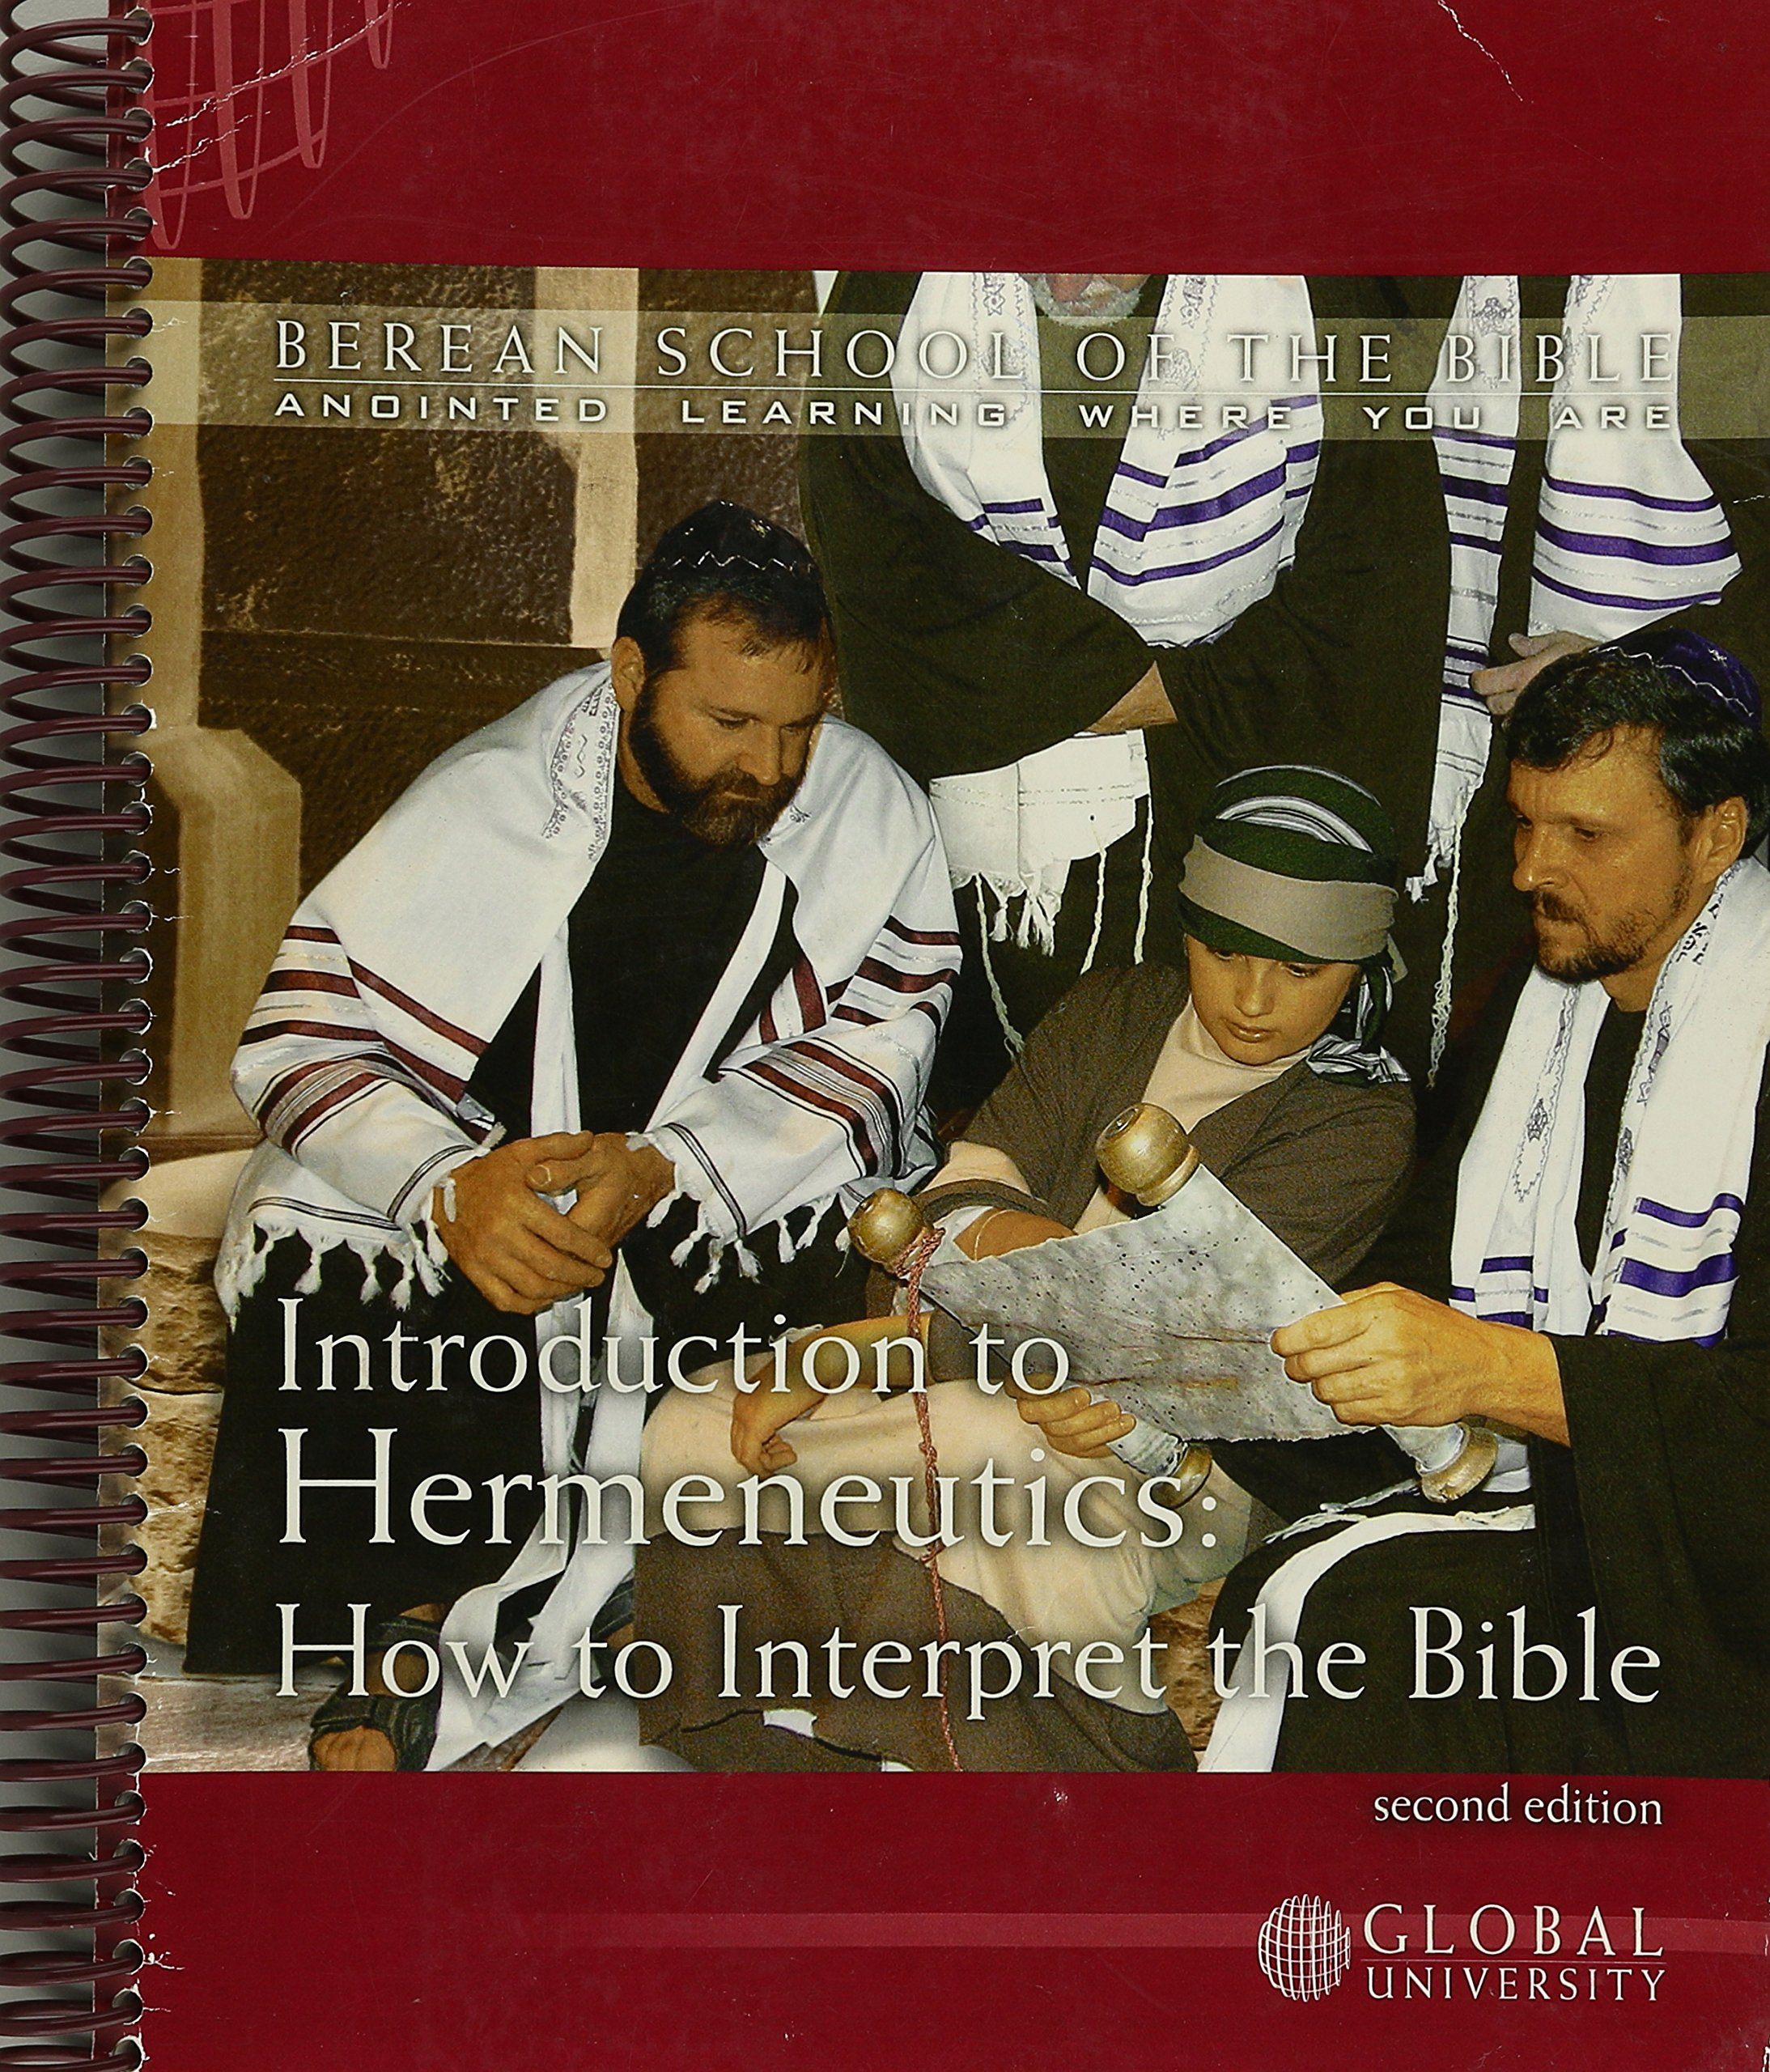 Introduction to hermeneutics how to interpret the bible berean school of the bible annointed learning where you are amazon com books